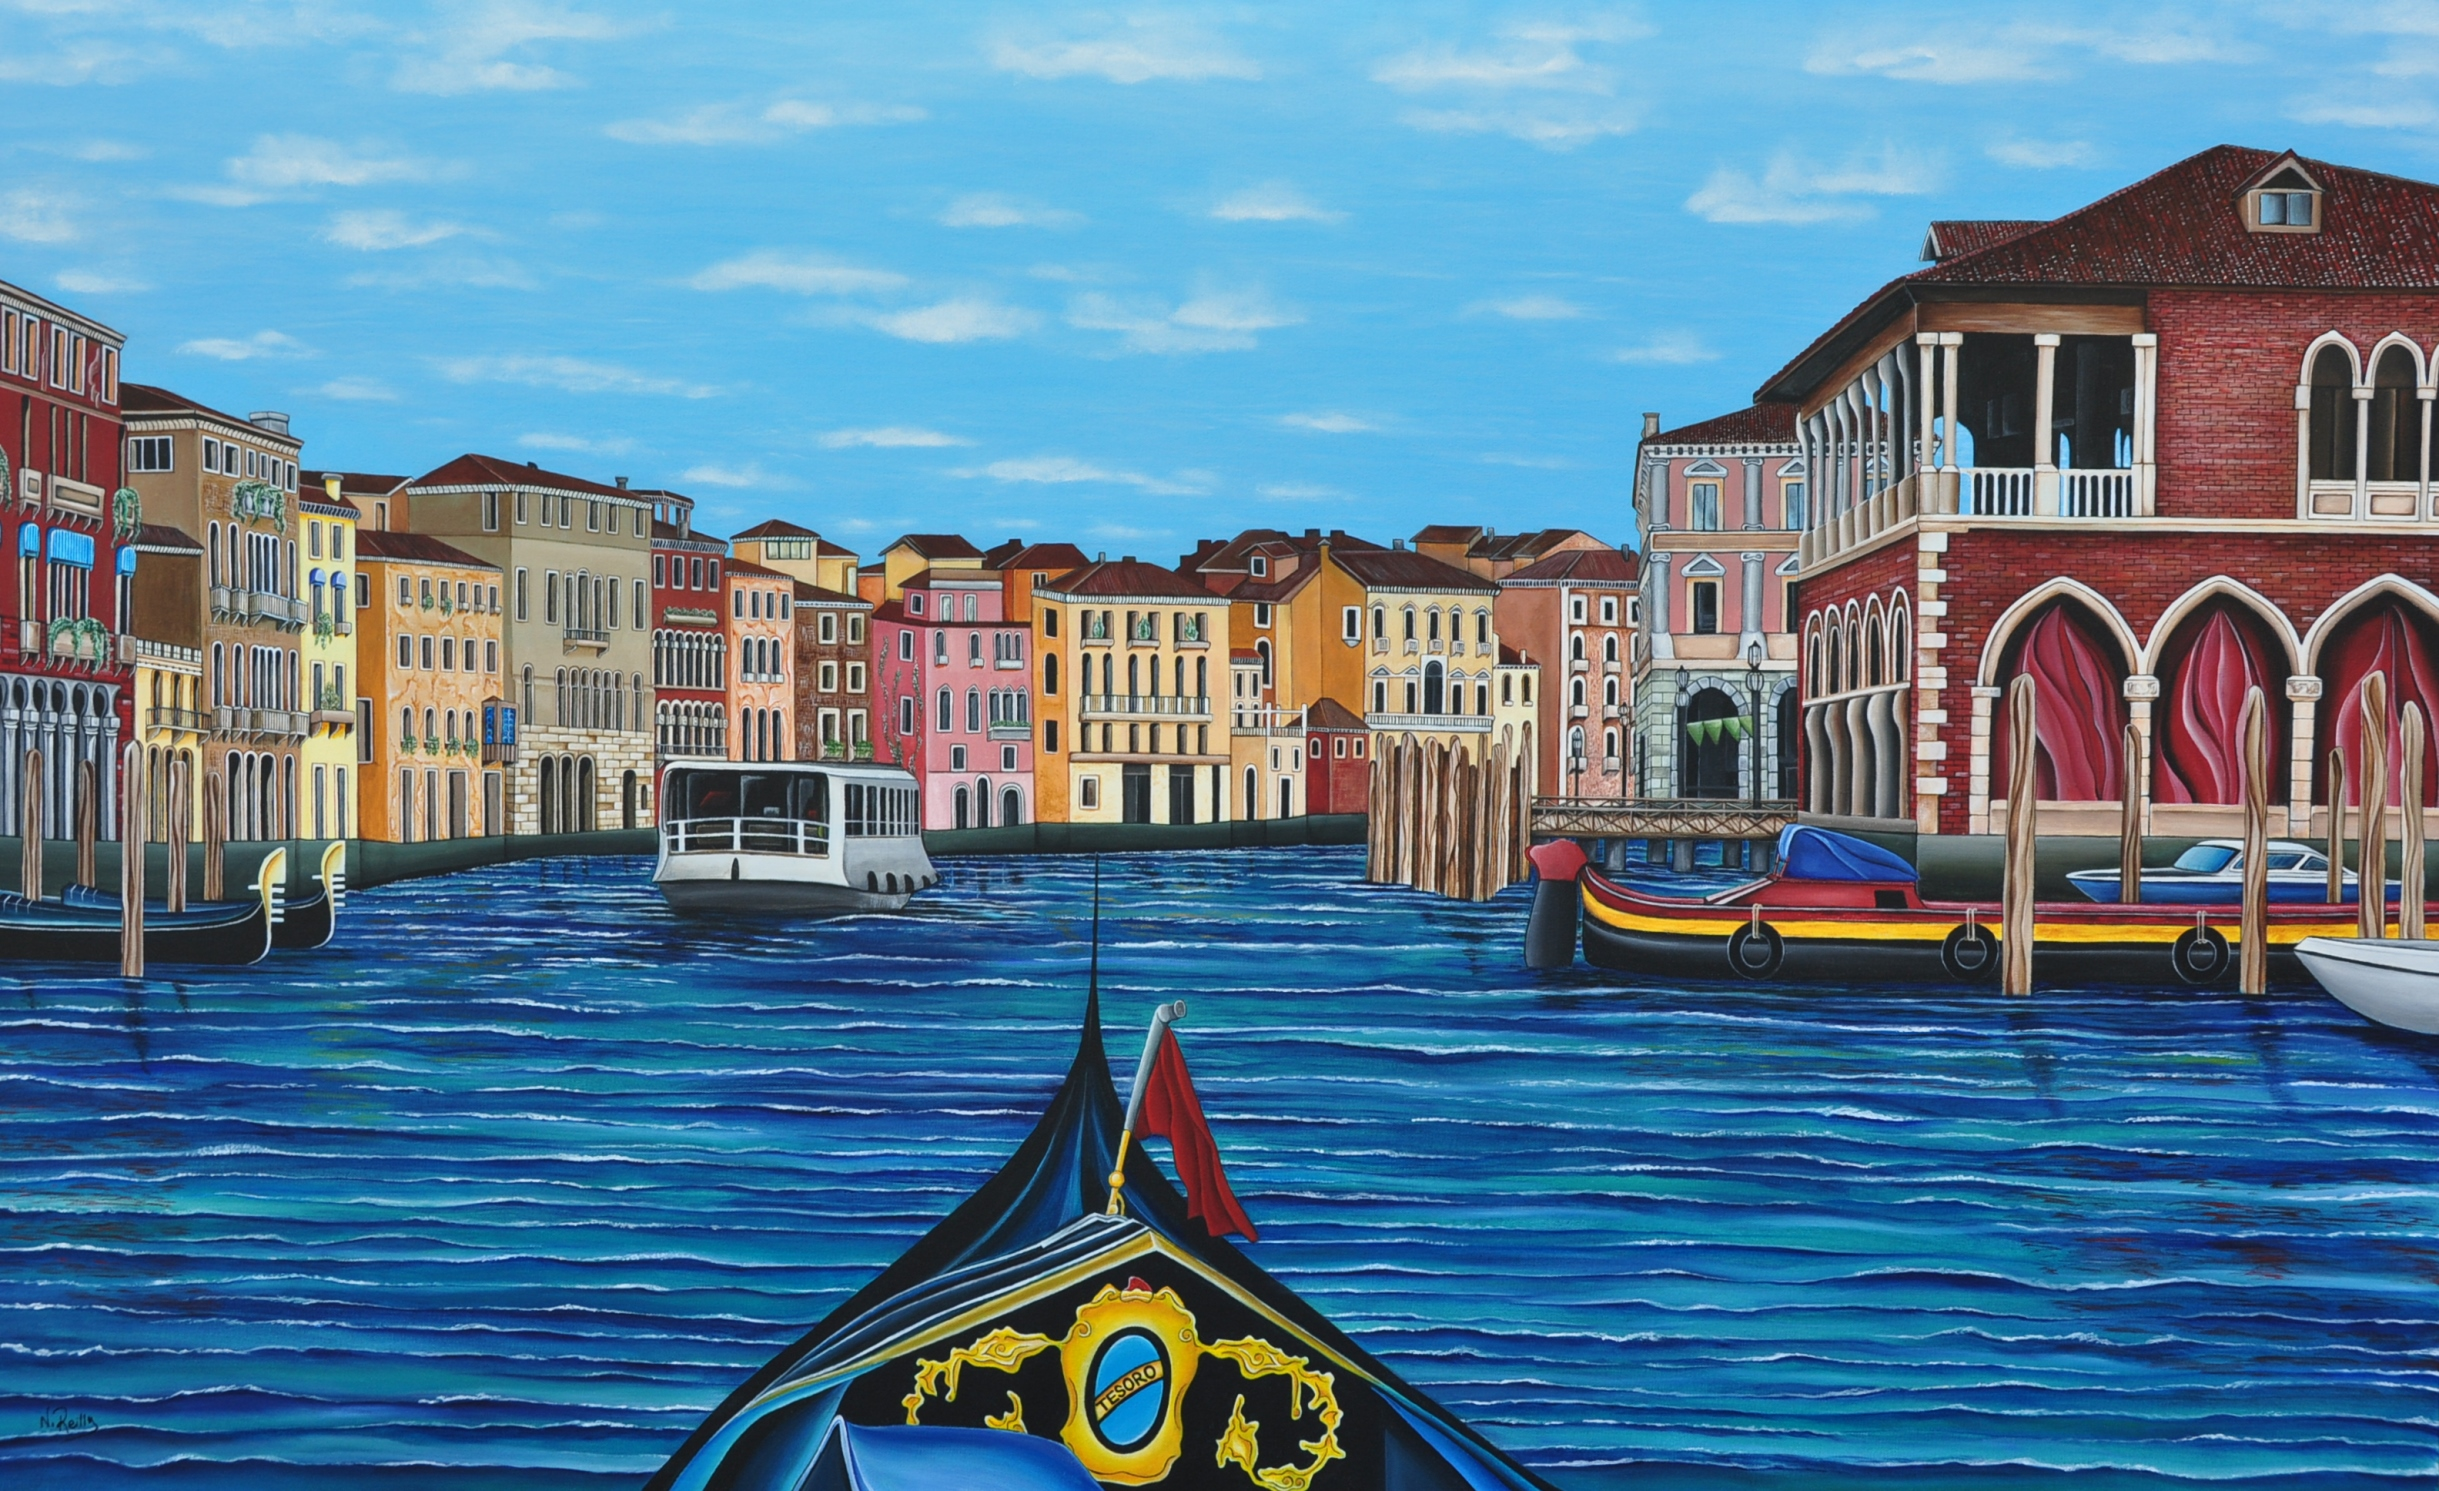 Tesoro artwork by Natalie Reilly - art listed for sale on Artplode